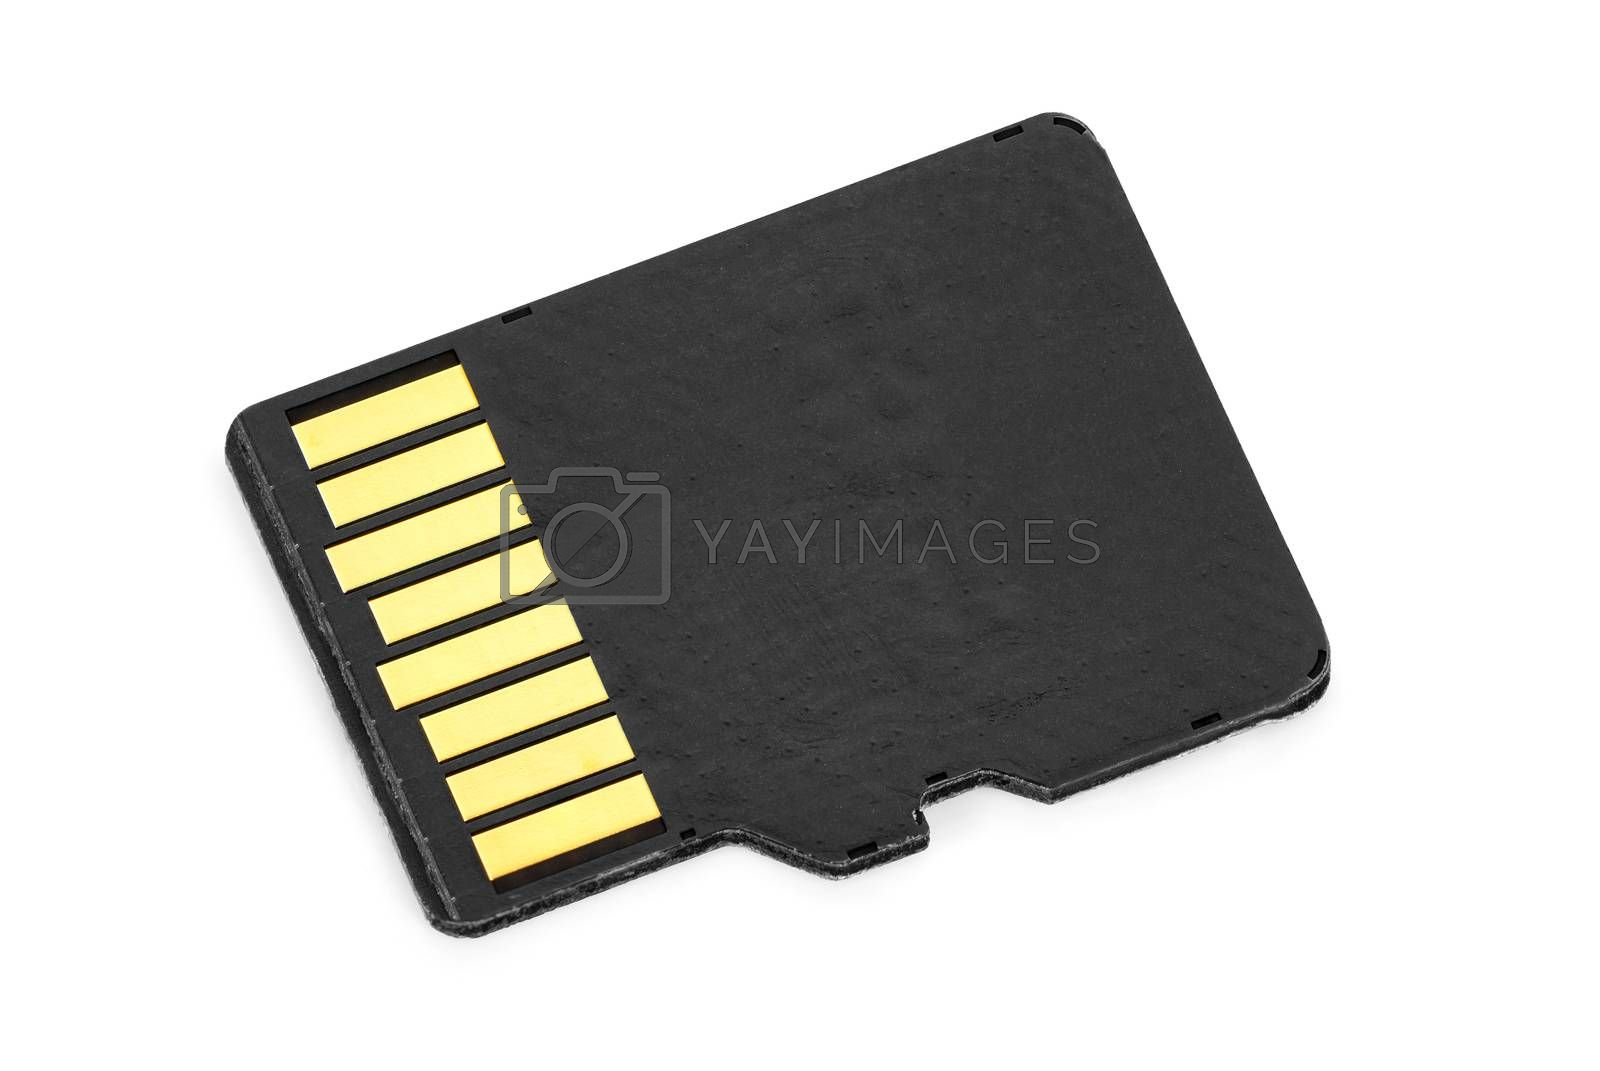 Royalty free image of Blank micro SD memory card on white background by mkos83